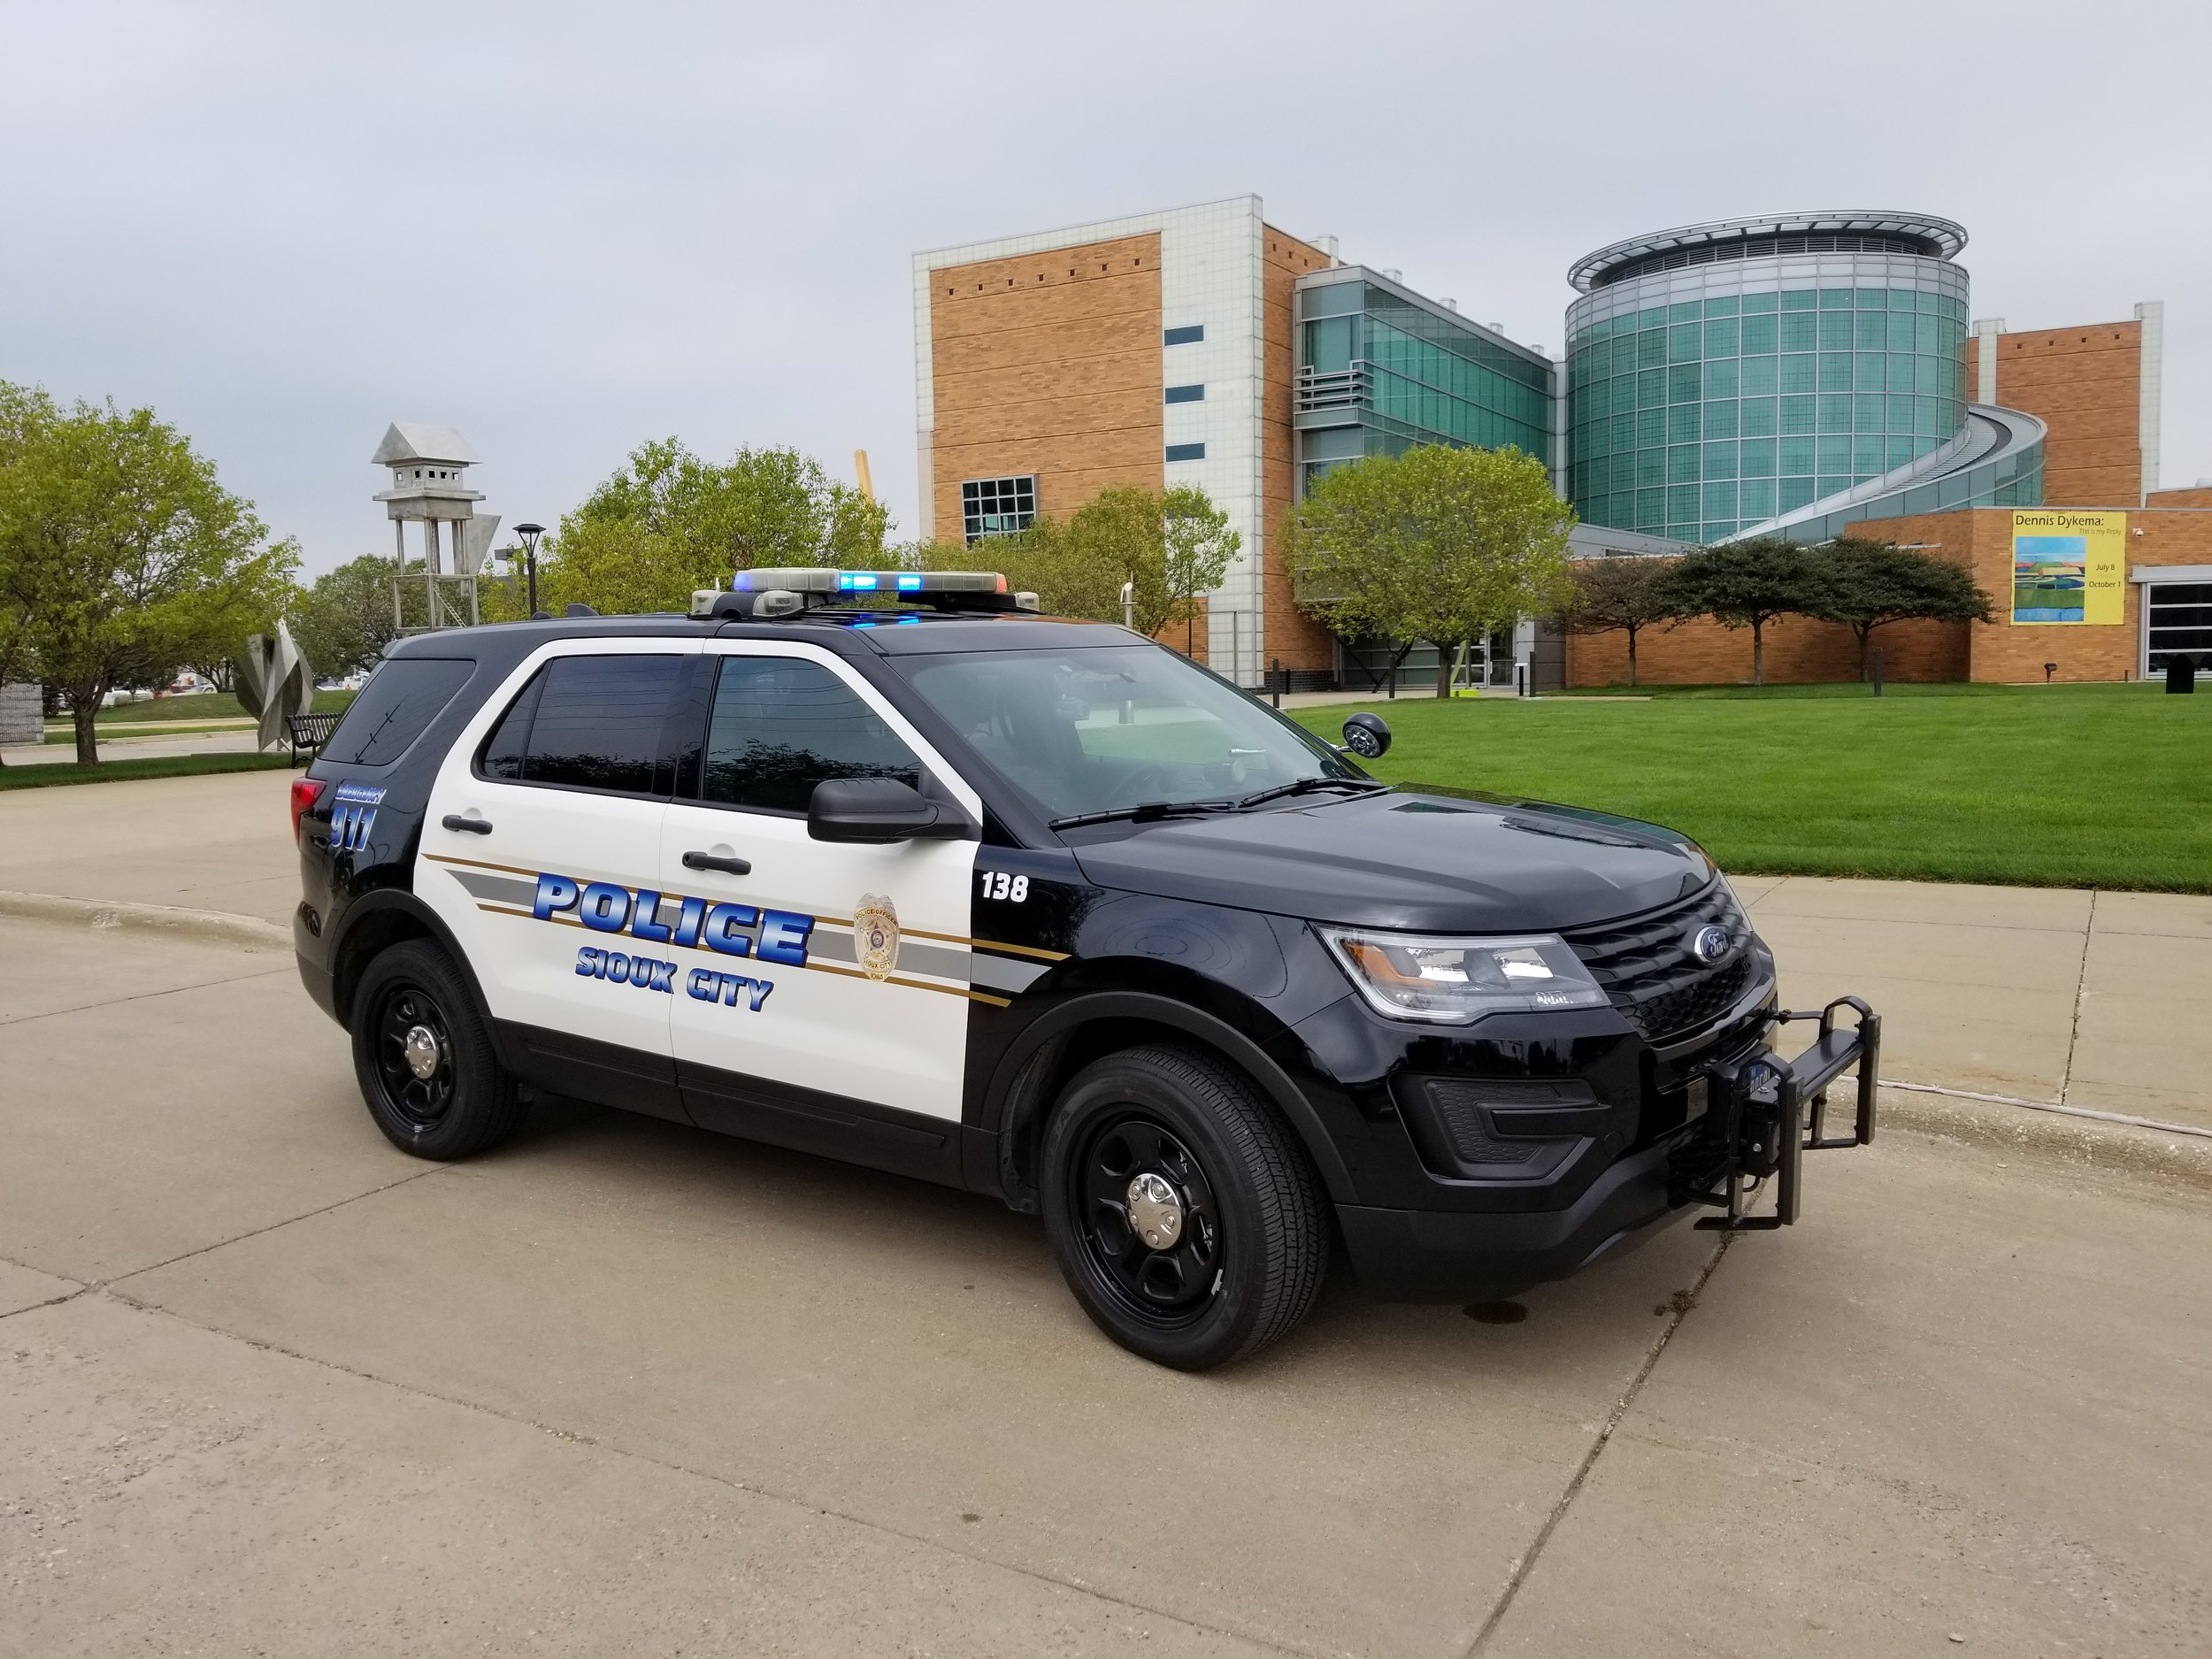 CLICK HERE TO JOIN THE MEN AND WOMEN OF THE SIOUX CITY POLICE DEPARTMENT